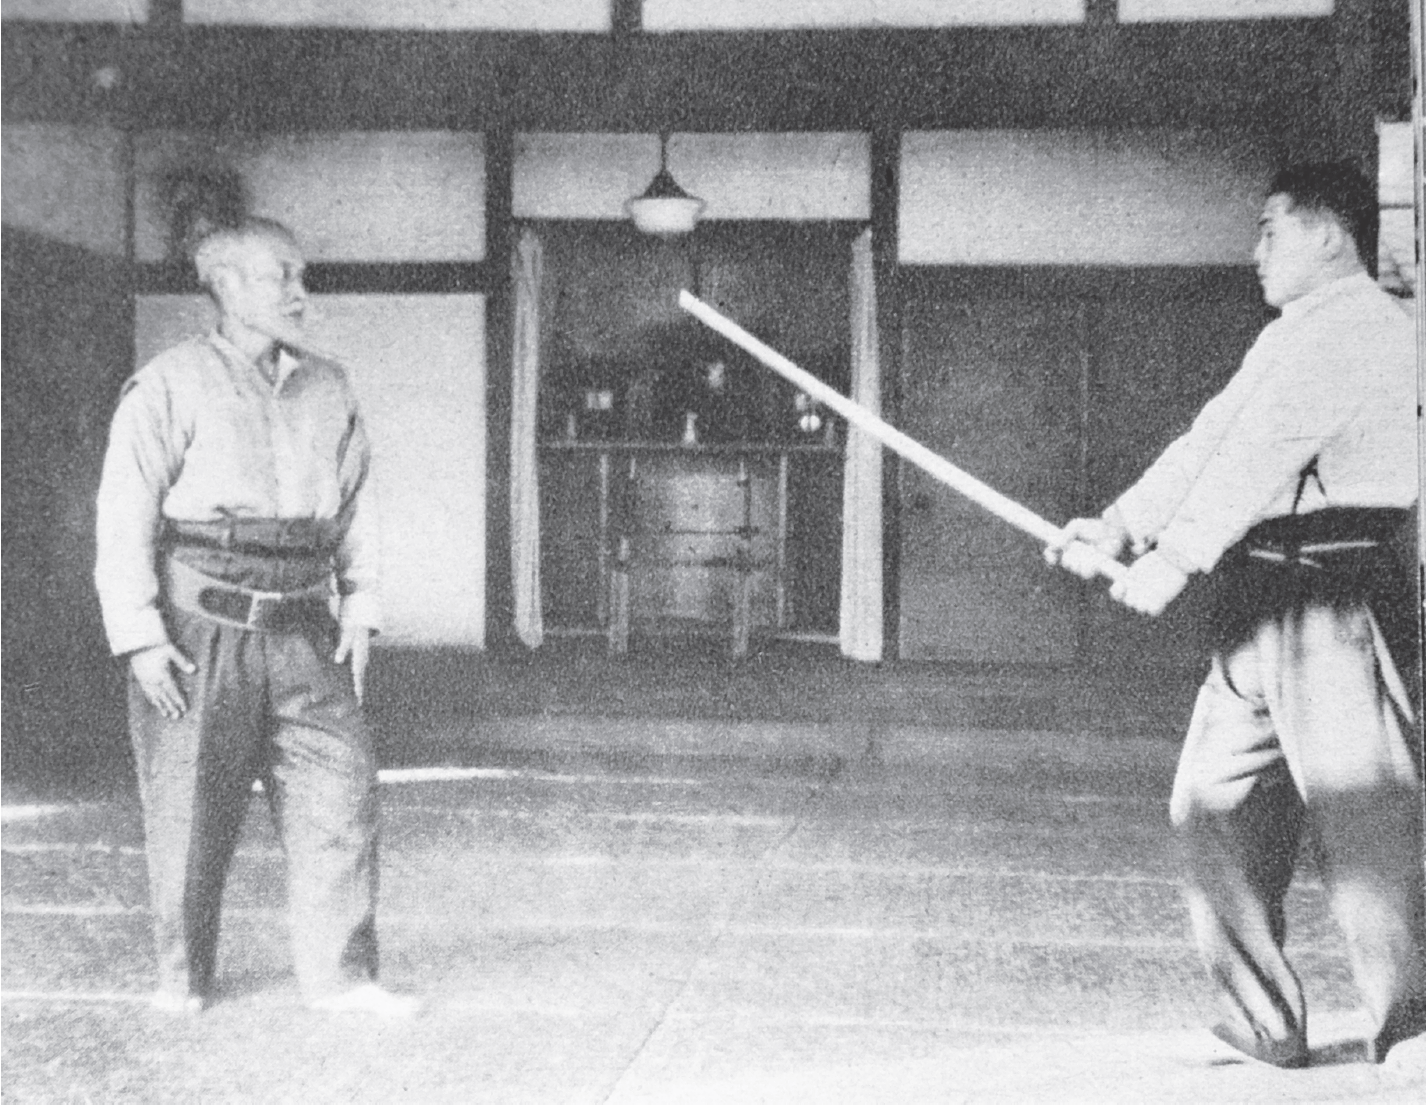 ueshiba-hanmi-demonstration